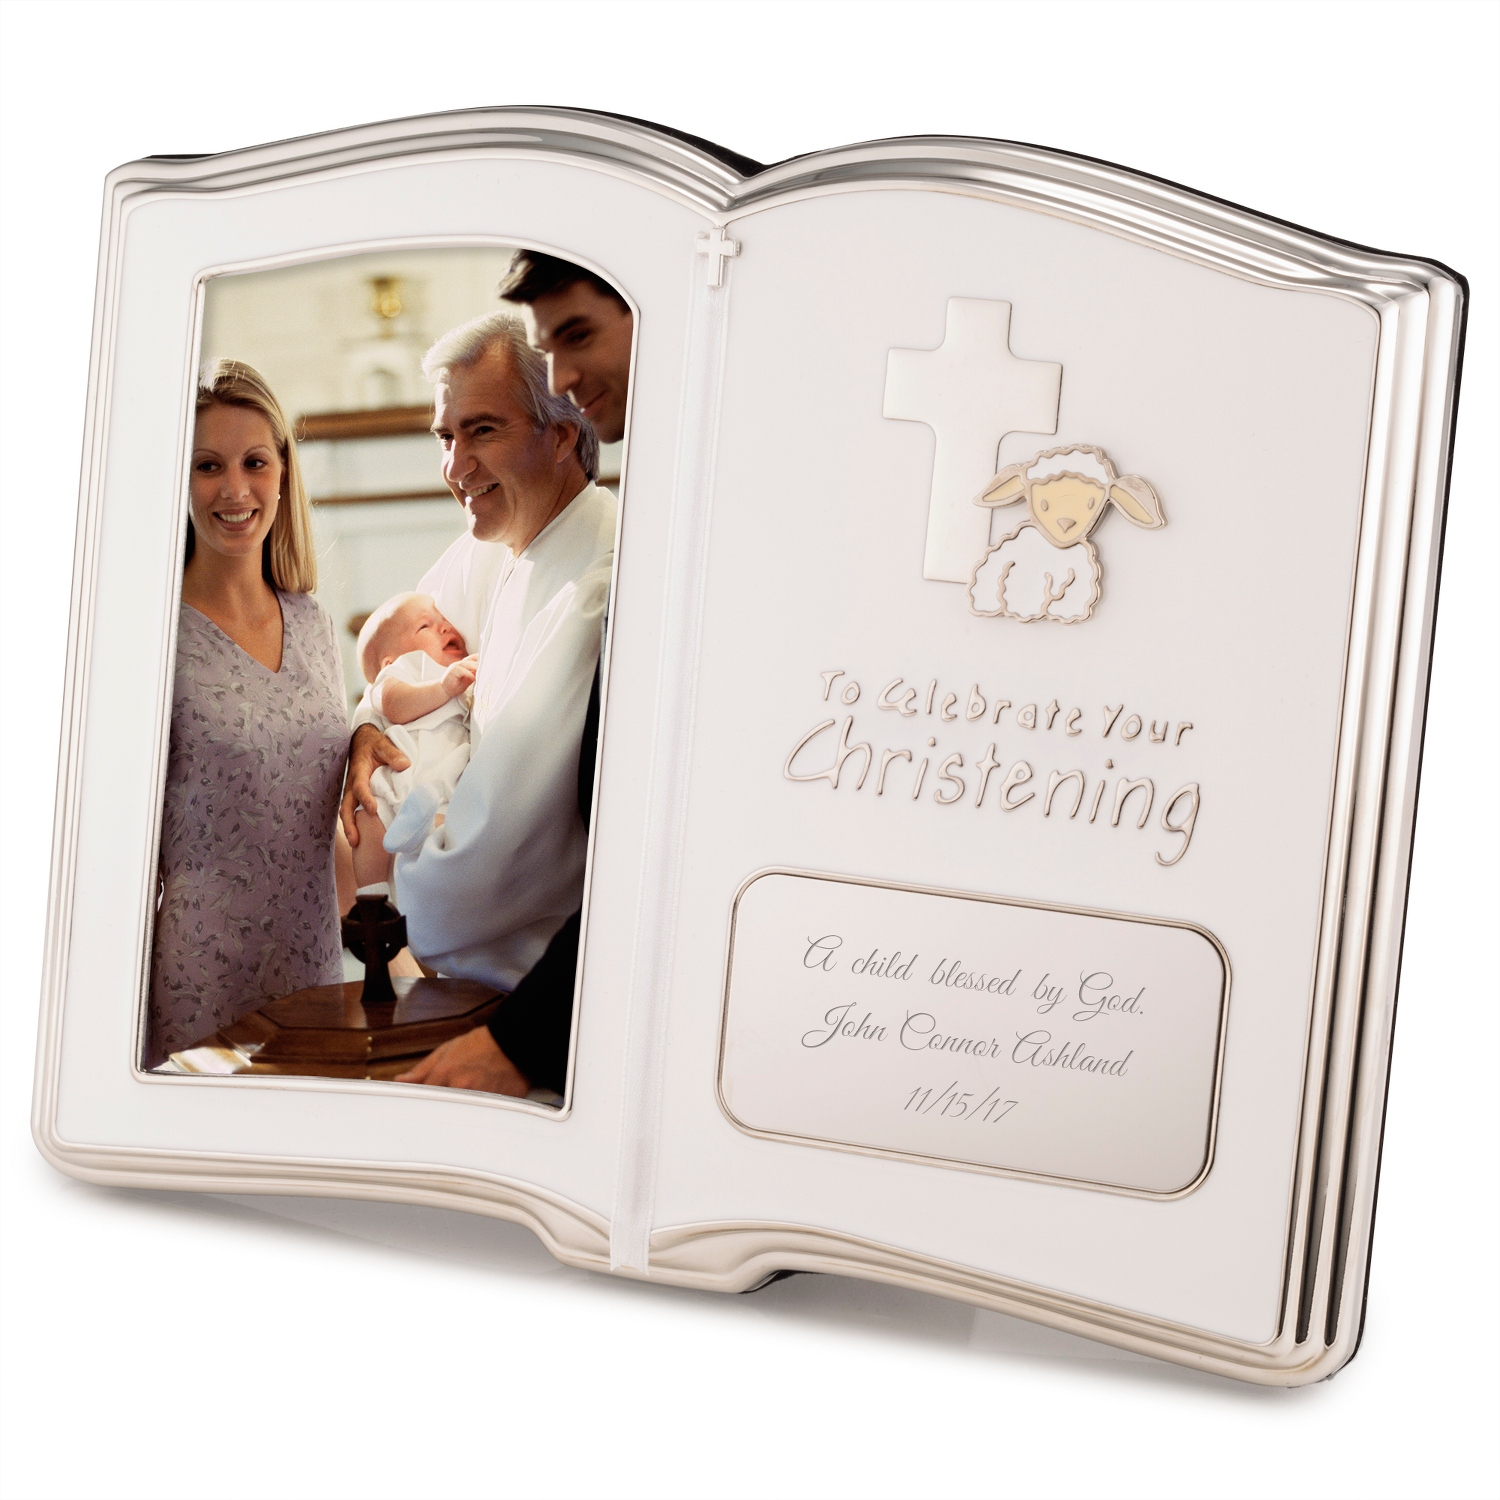 Personalized Baptism & Christening Gifts at Things Remembered